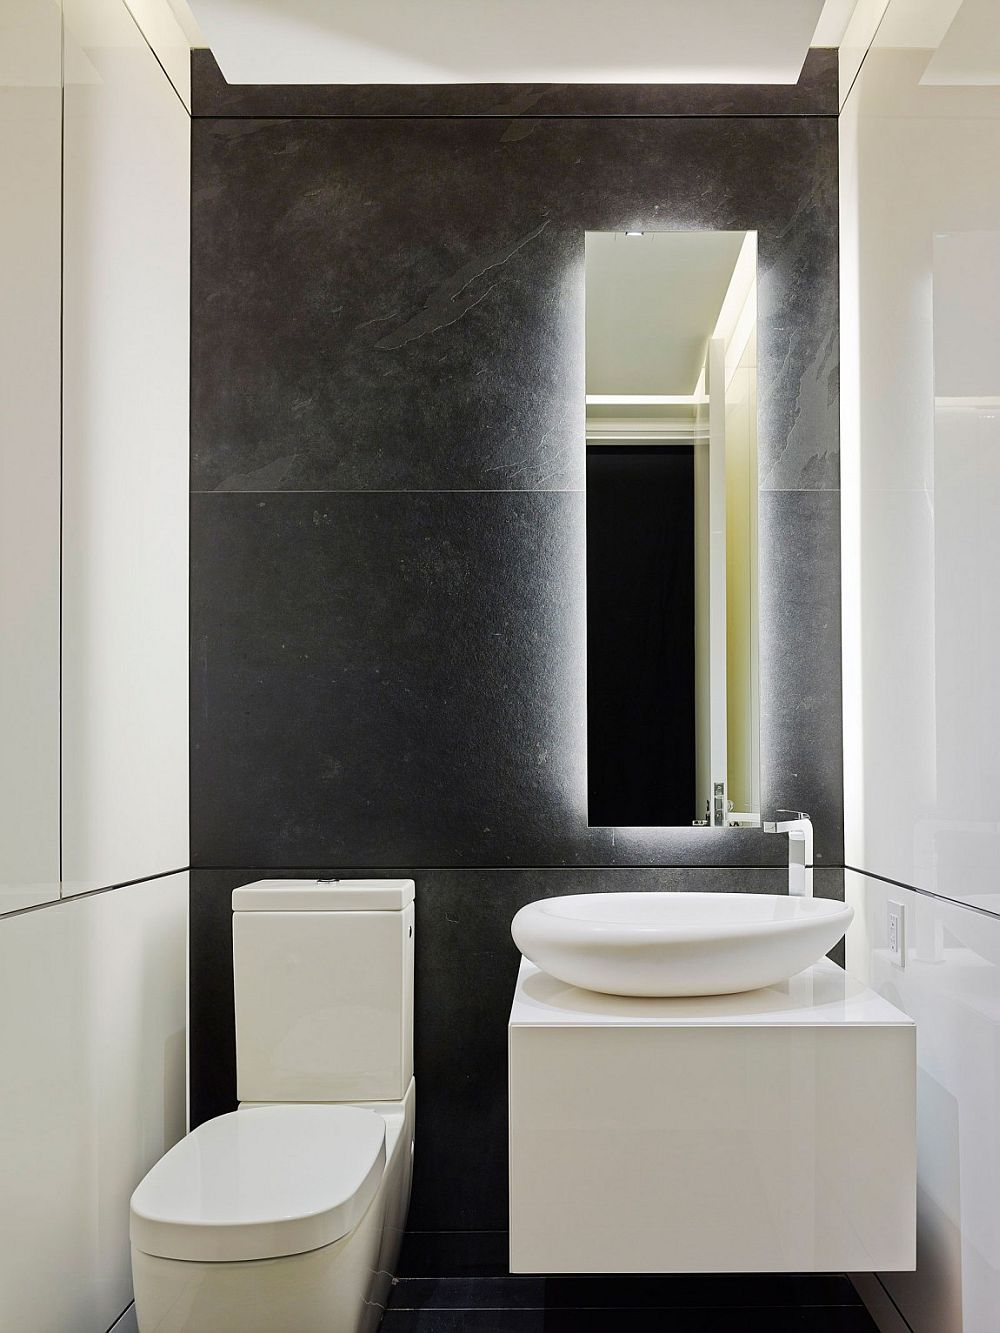 Powder in with a modern minimal style and white sink